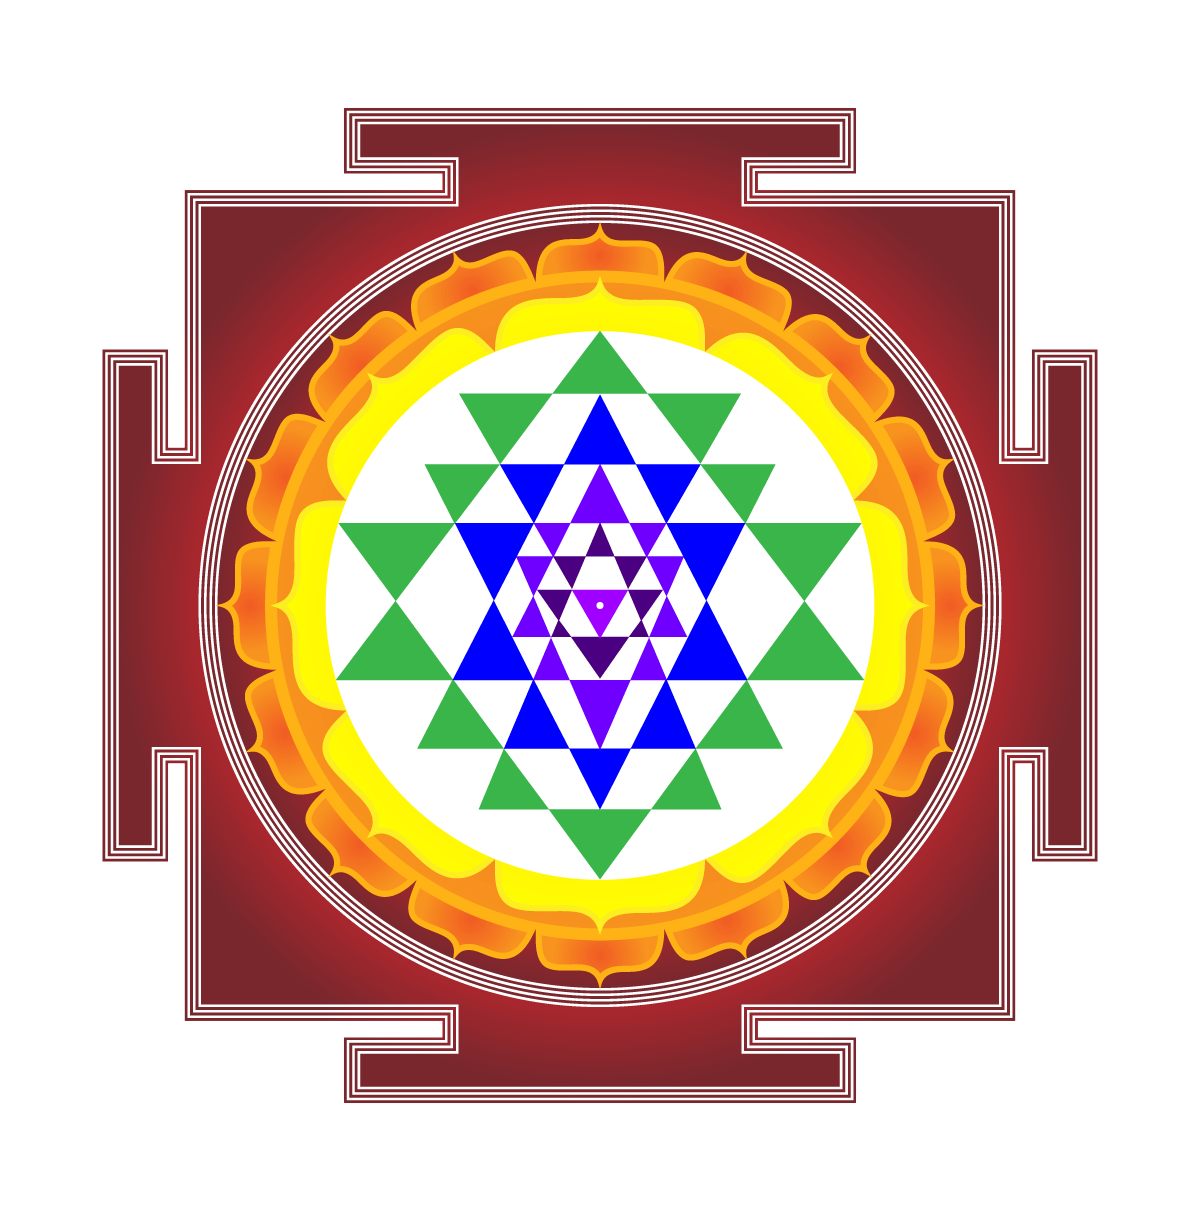 The Sri Yantra is an ancient symbol used for meditation ...